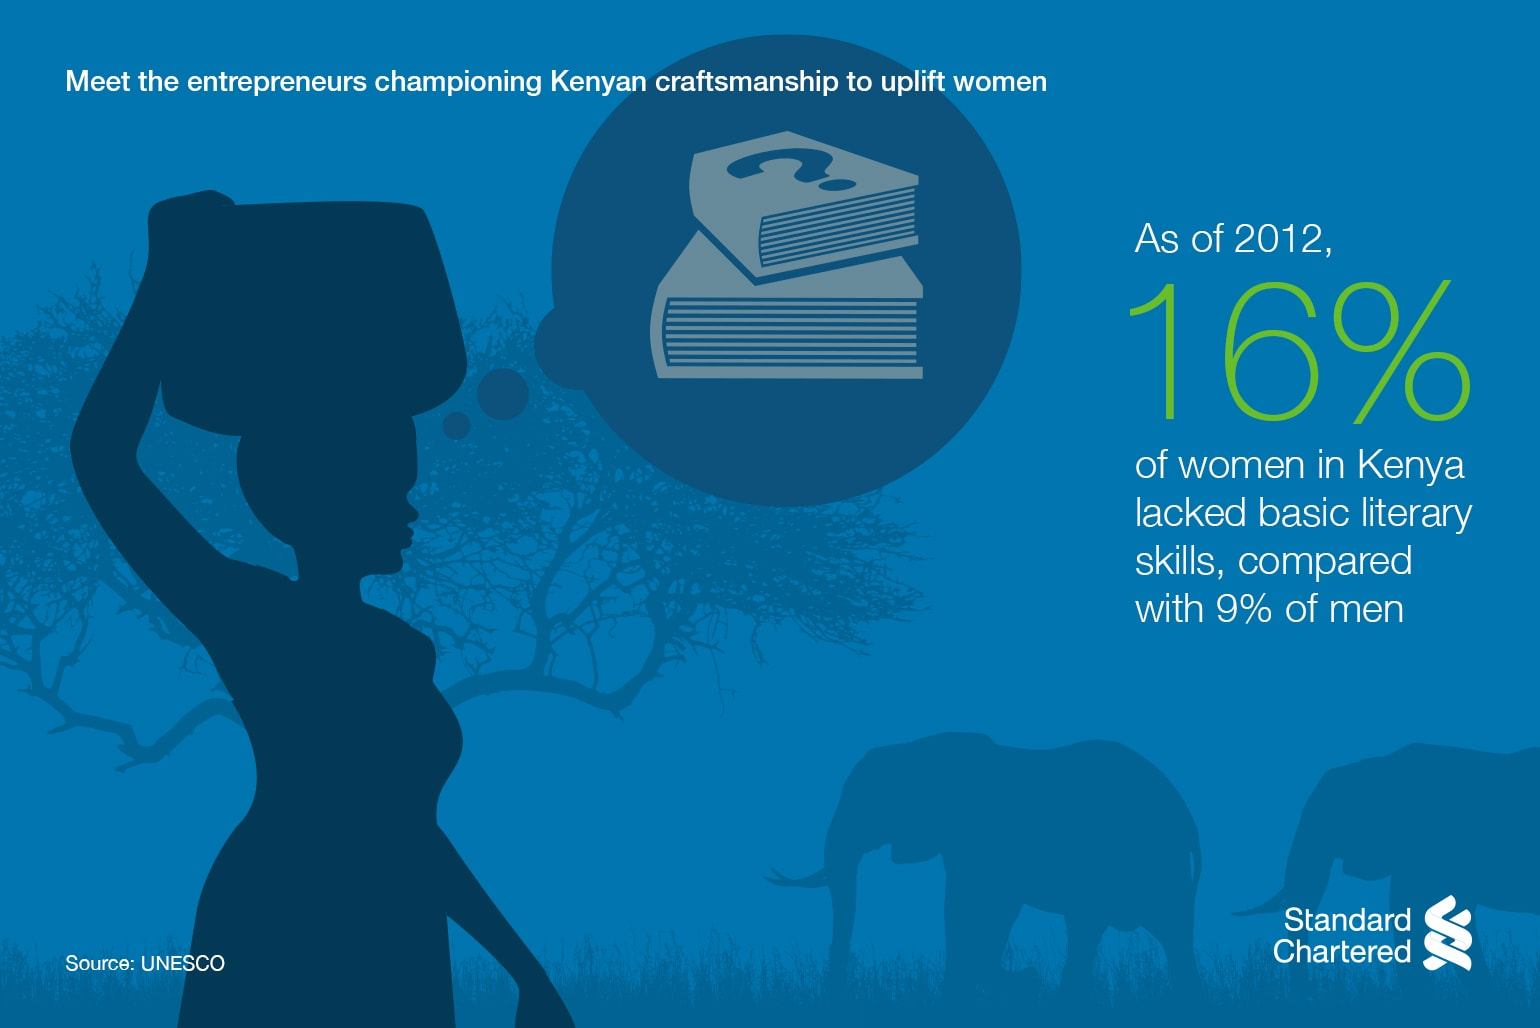 As of 2012, 16% of women in Kenya lacked basic literary skills, compared with 9% of men